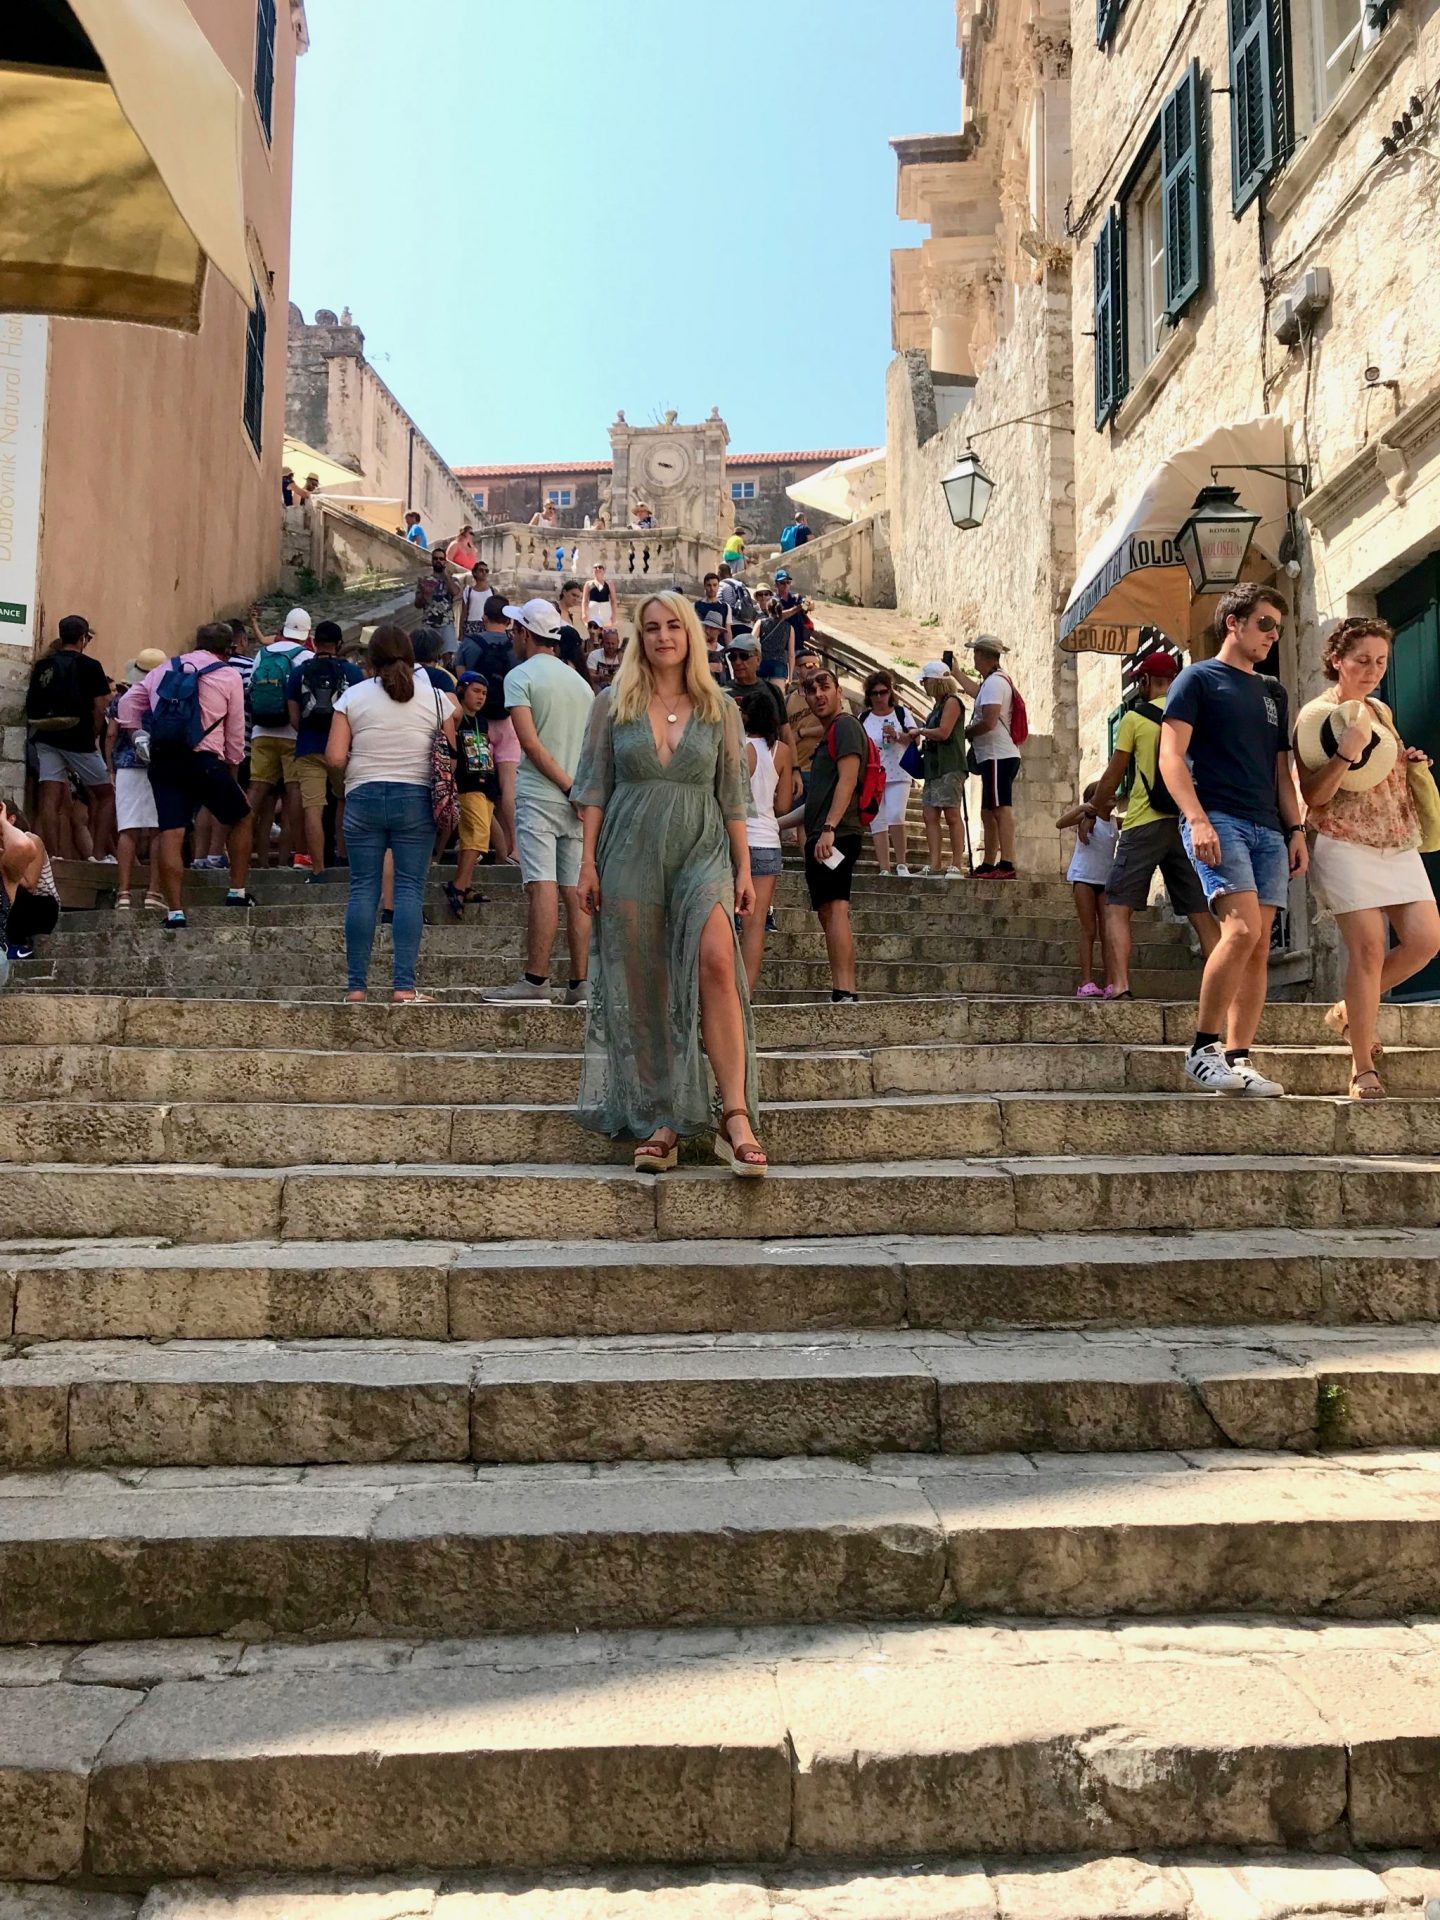 dubrovnik game of thrones scene spots - the walk of atonement shame steps